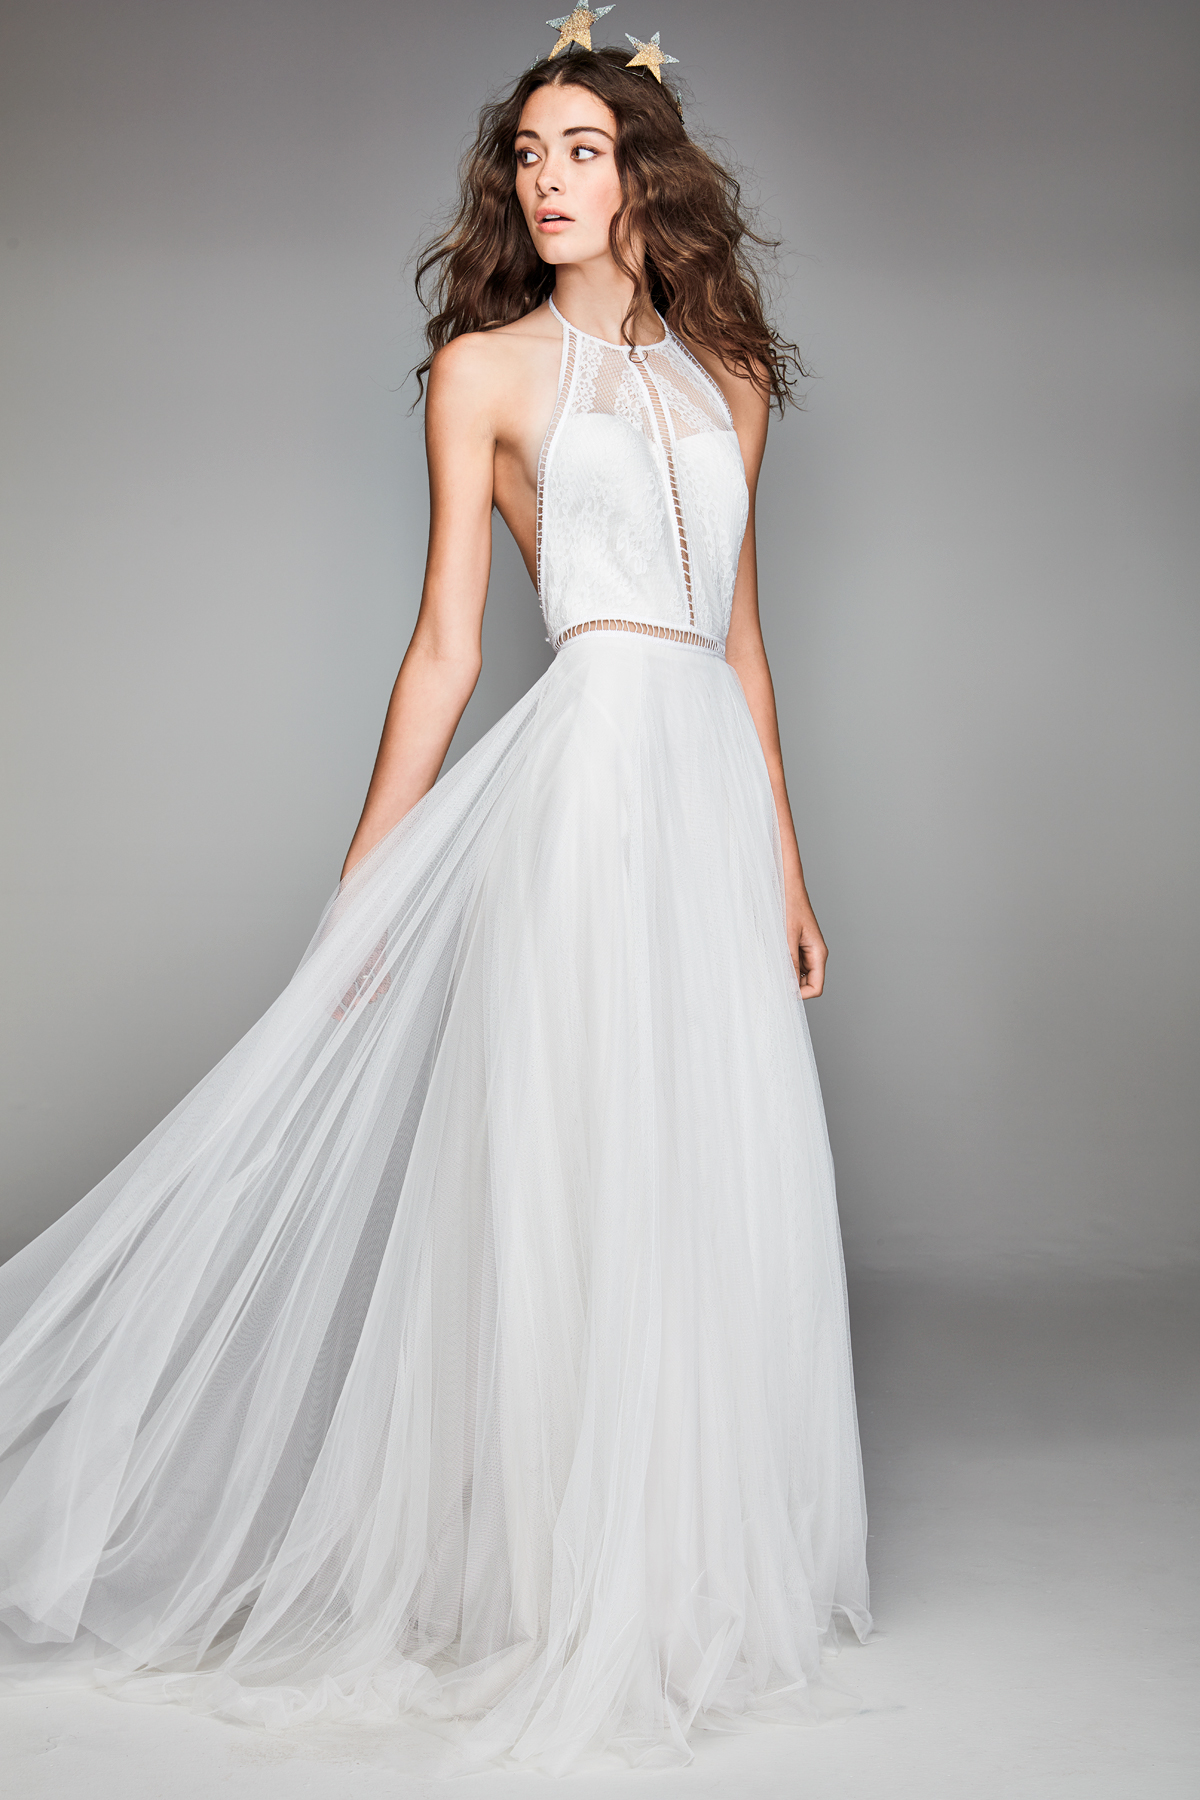 willowby by watters 2018 halter a-line wedding dress